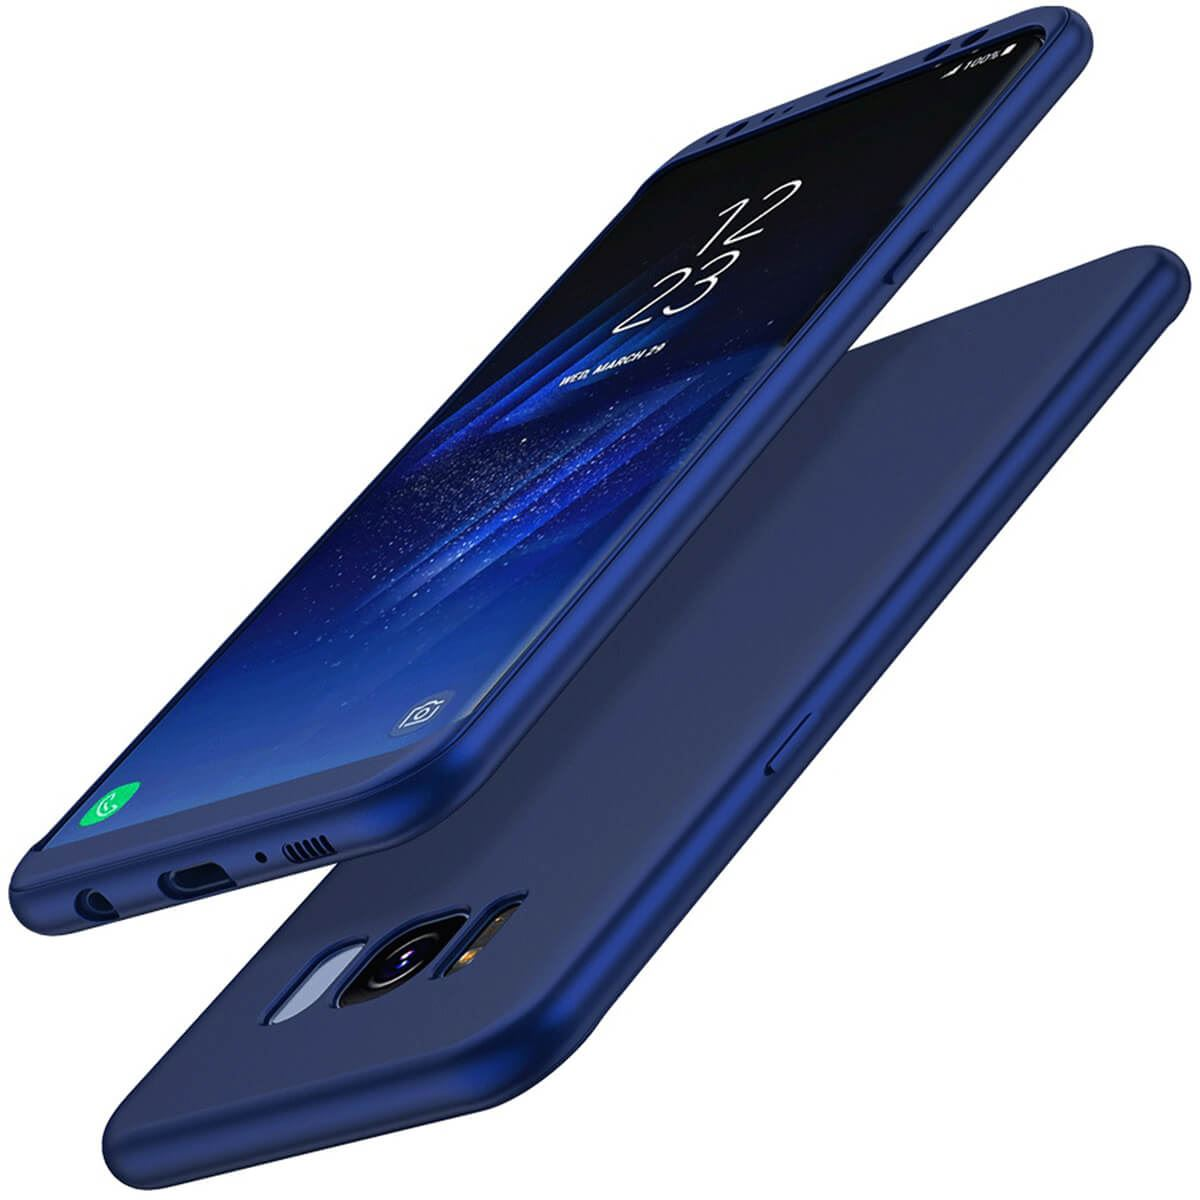 ShockProof-Thin-Case-For-Samsung-Galaxy-S7-edge-S8-Plus-Hybrid-360-TPU-Cover thumbnail 8